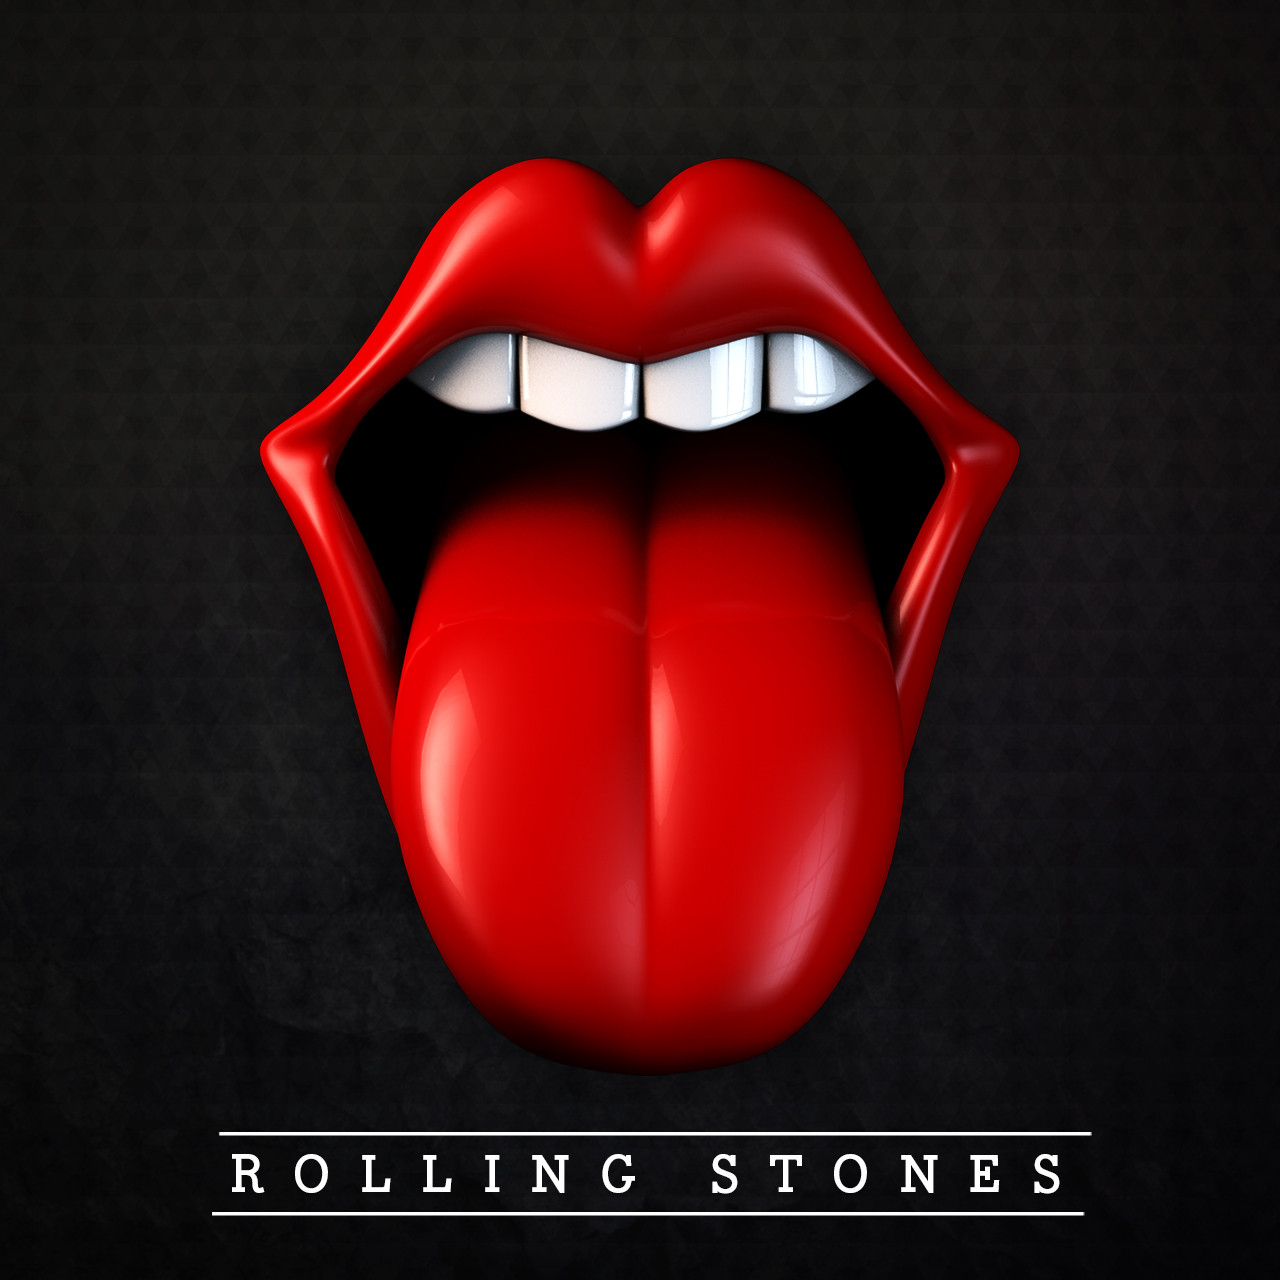 Rolling Stones Announce Summer Tour Dates We Havent